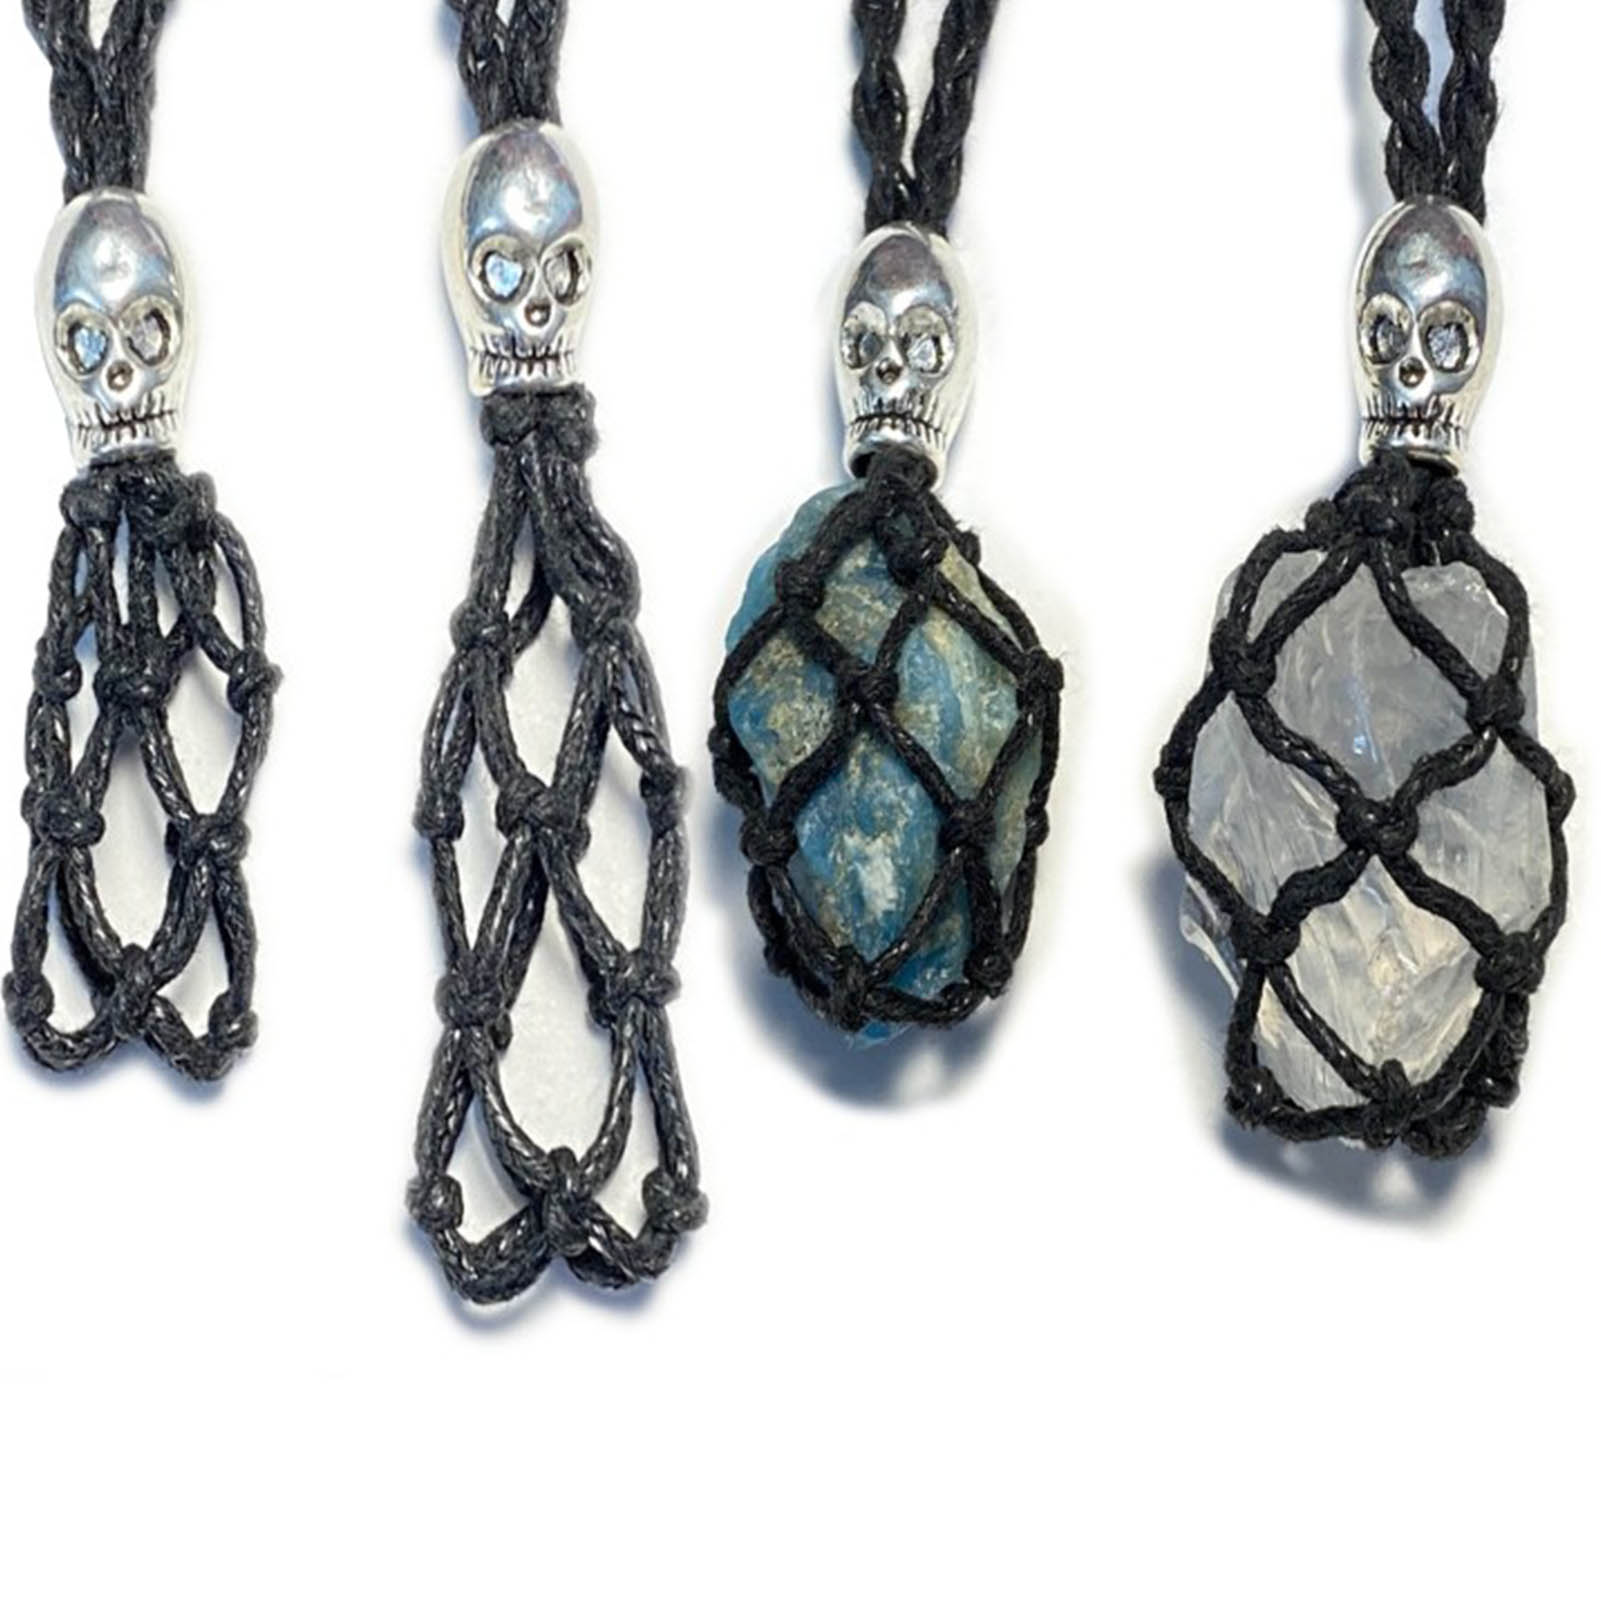 2pcs Necklace Cord Empty Stone Holder Natural Quartz Crystal Raw Stone Chakra Point Healing Fish Netted Indians Amulets Pendant